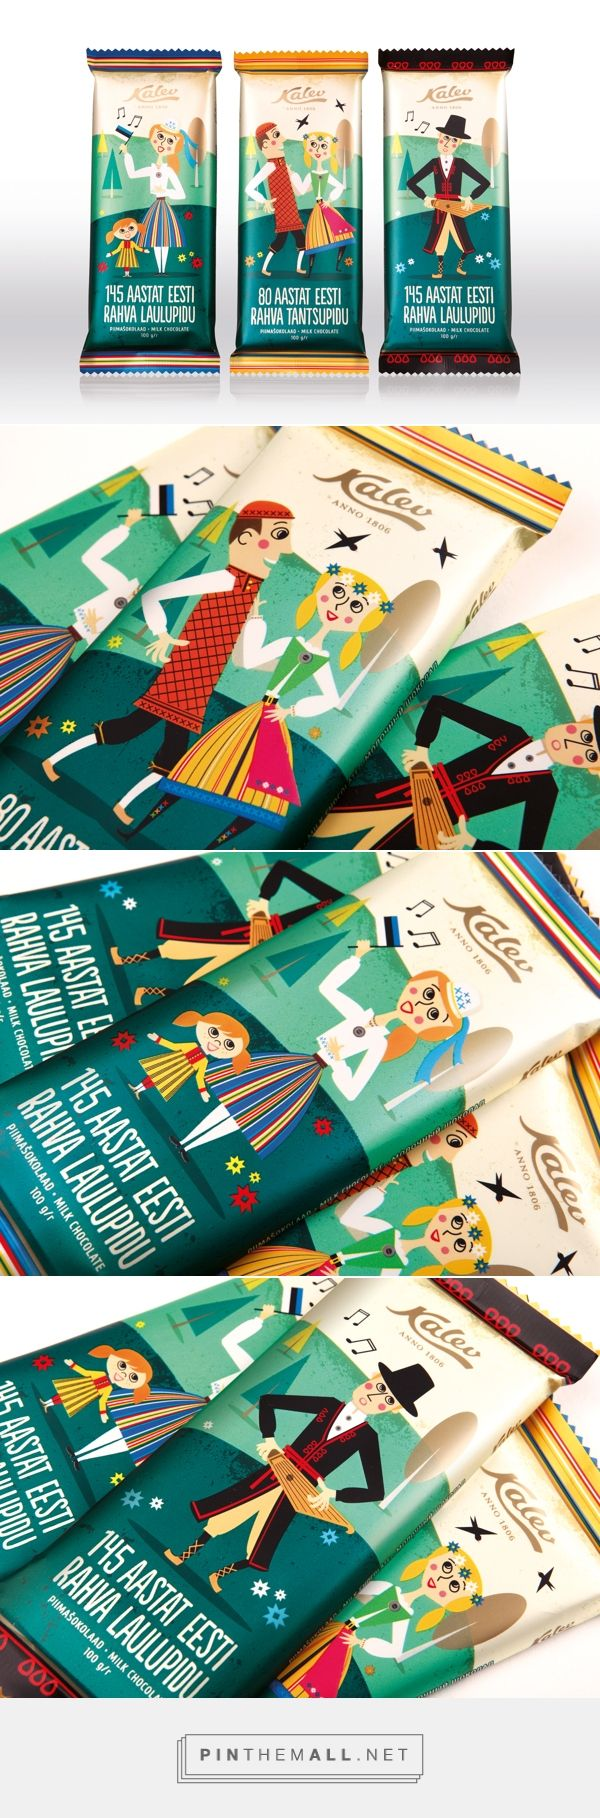 Chocolate bar / Ethno inspired design chocolate bars to support the continuation of the folk traditions in Estonia PD